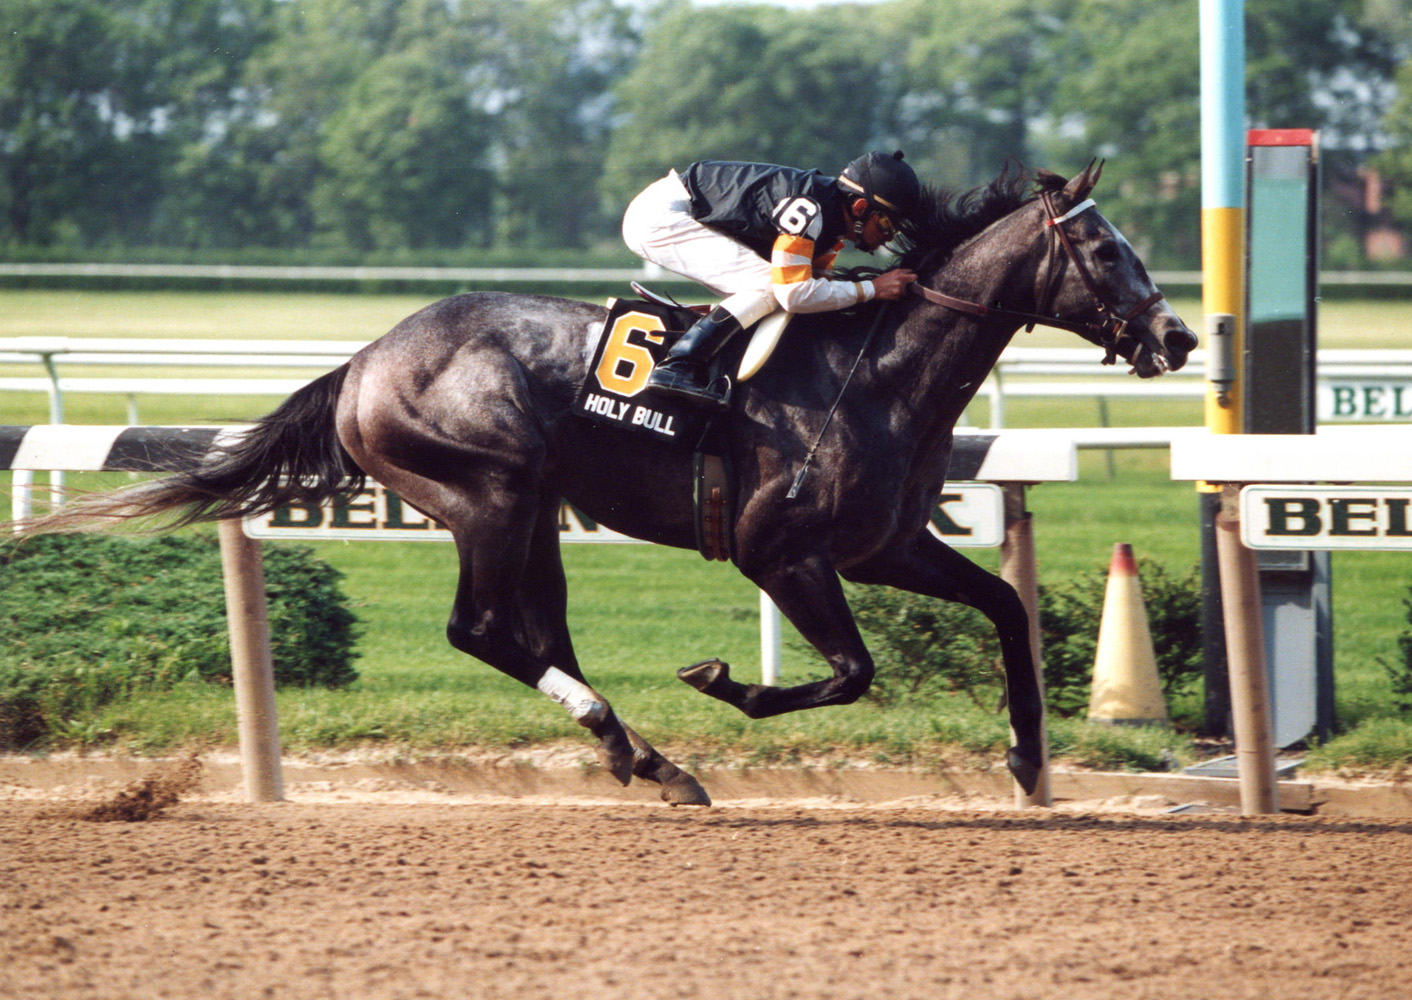 Holy Bull (Mike Smith up) winning the 1994 Metropolitan Handicap at Belmont Park (Barbara D. Livingston/Museum Collection)